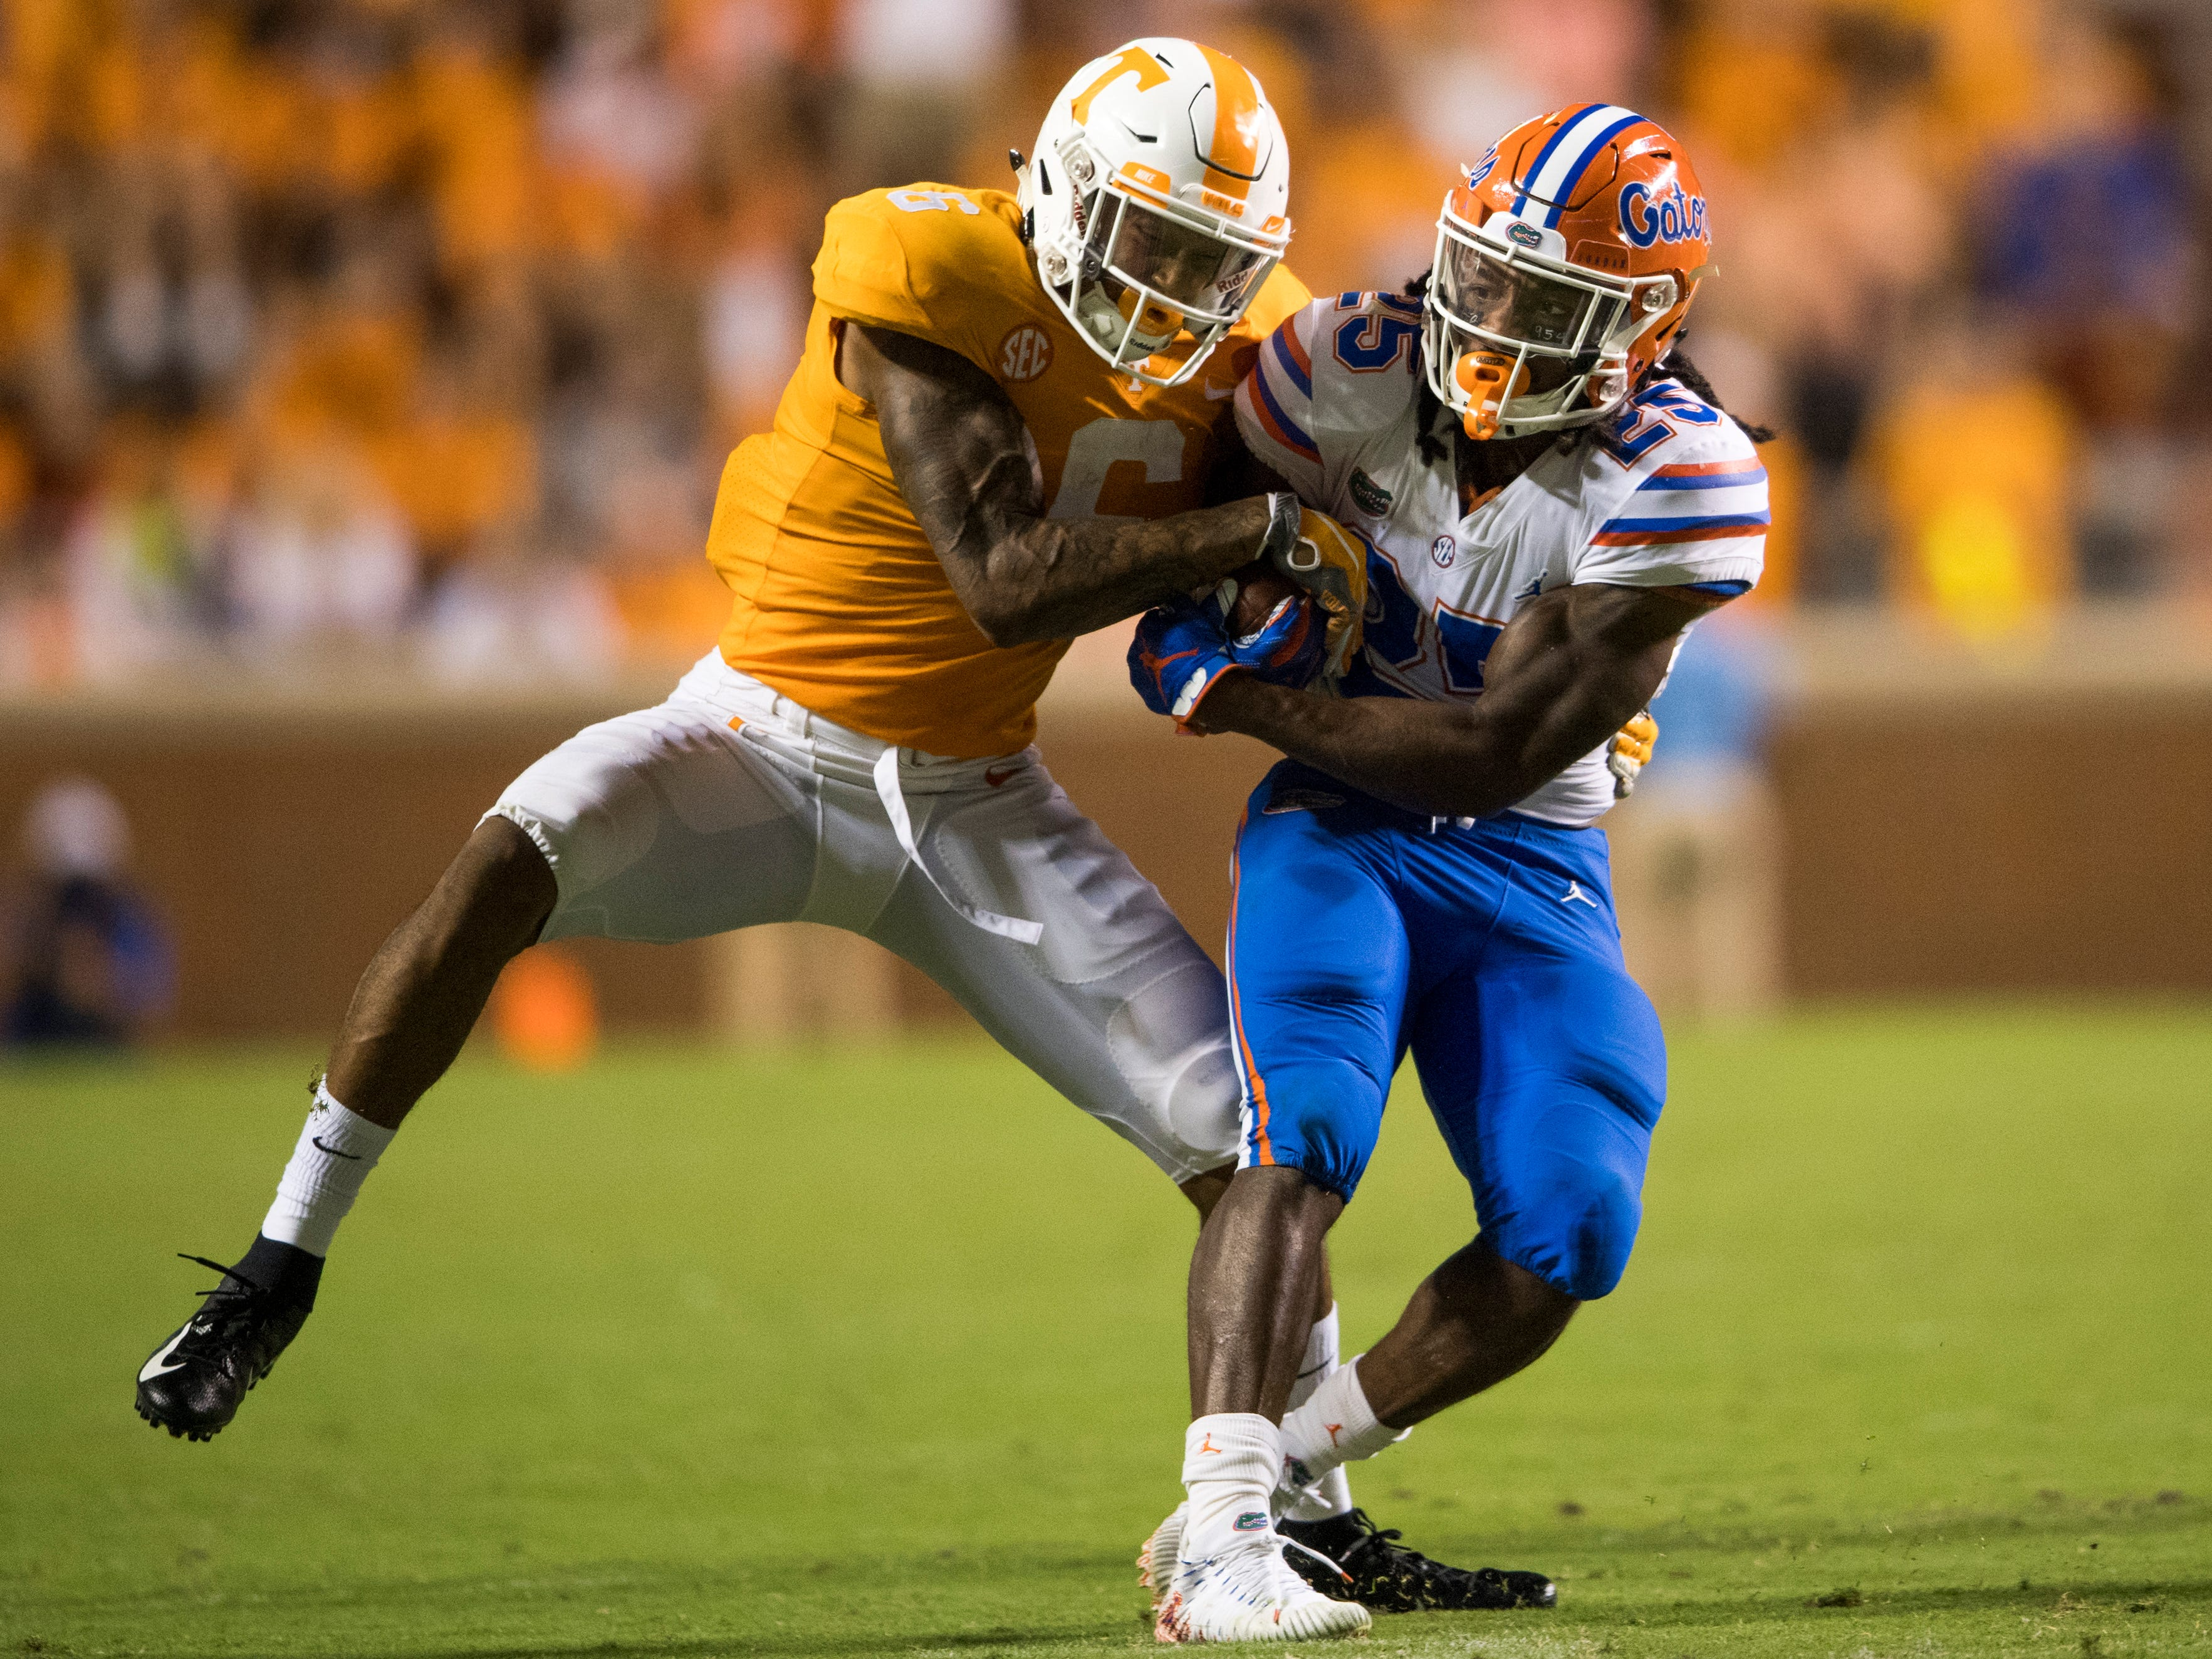 Tennessee defensive back/wide receiver Alontae Taylor (6) takes down Florida running back Jordan Scarlett (25)  during the Tennessee Volunteers' game against Florida in Neyland Stadium on Saturday, Sept. 22, 2018.